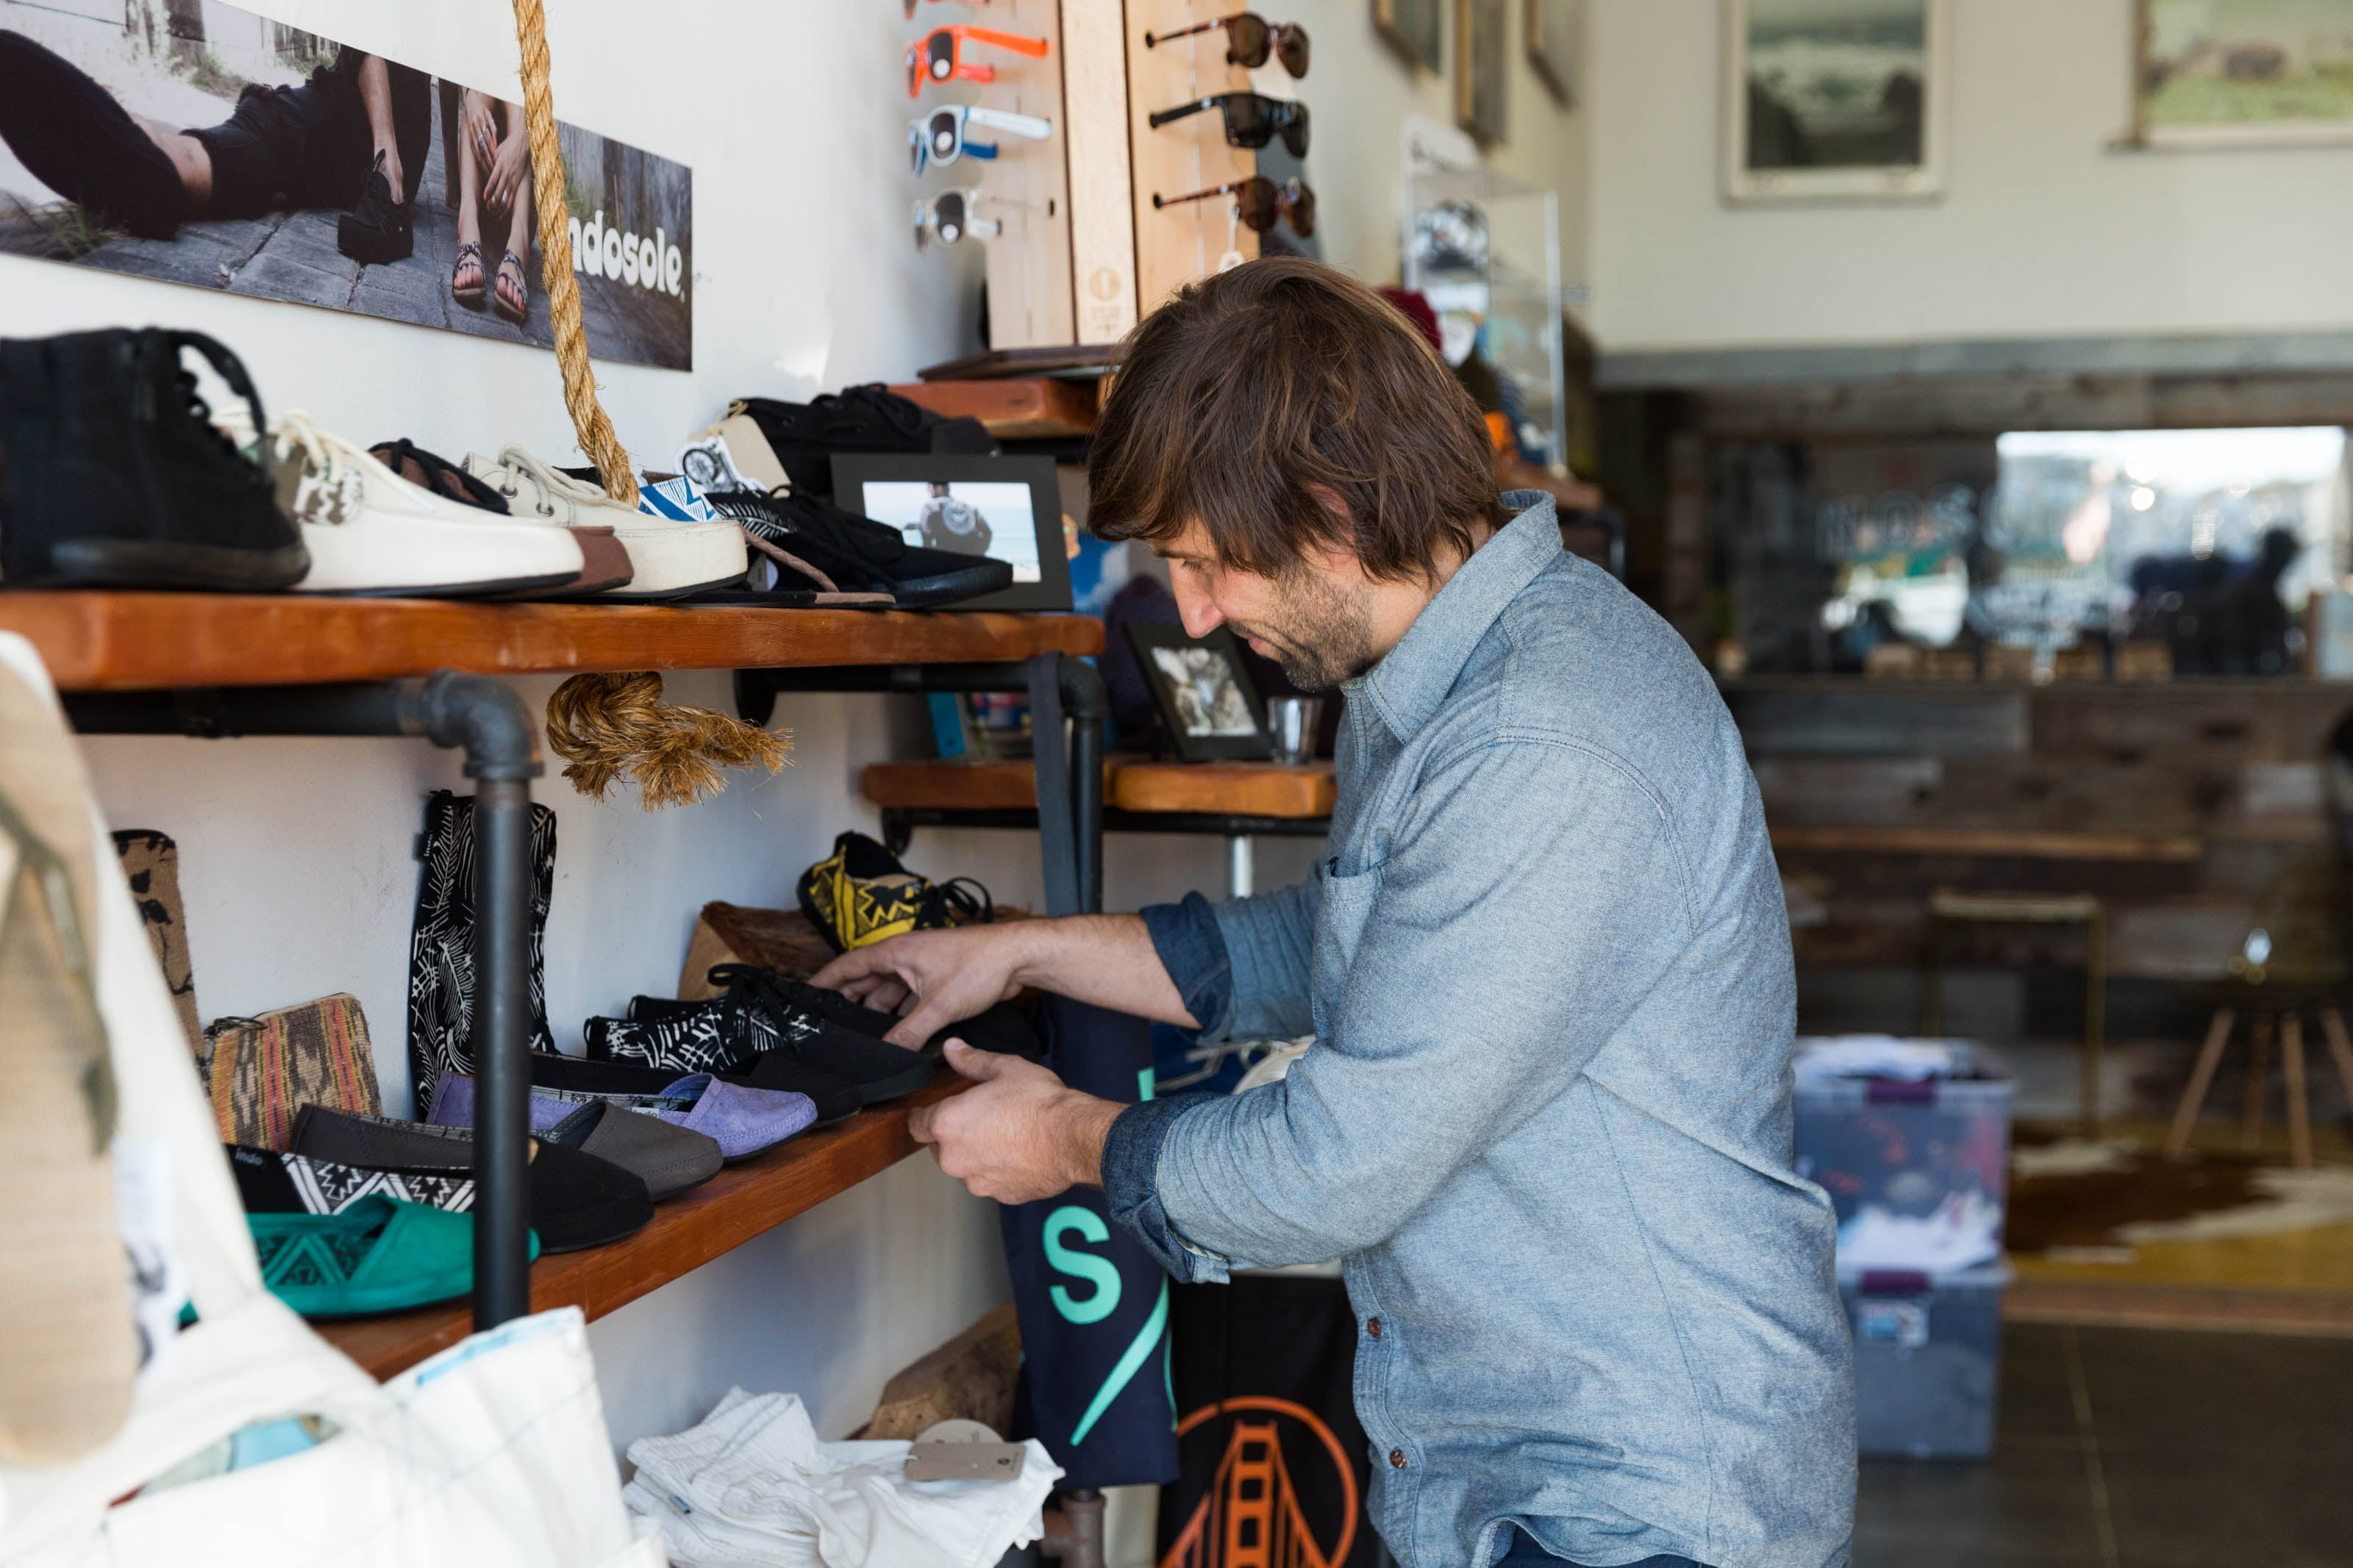 How Indosole Uses Fundbox to Save the Environment One Shoe at a Time